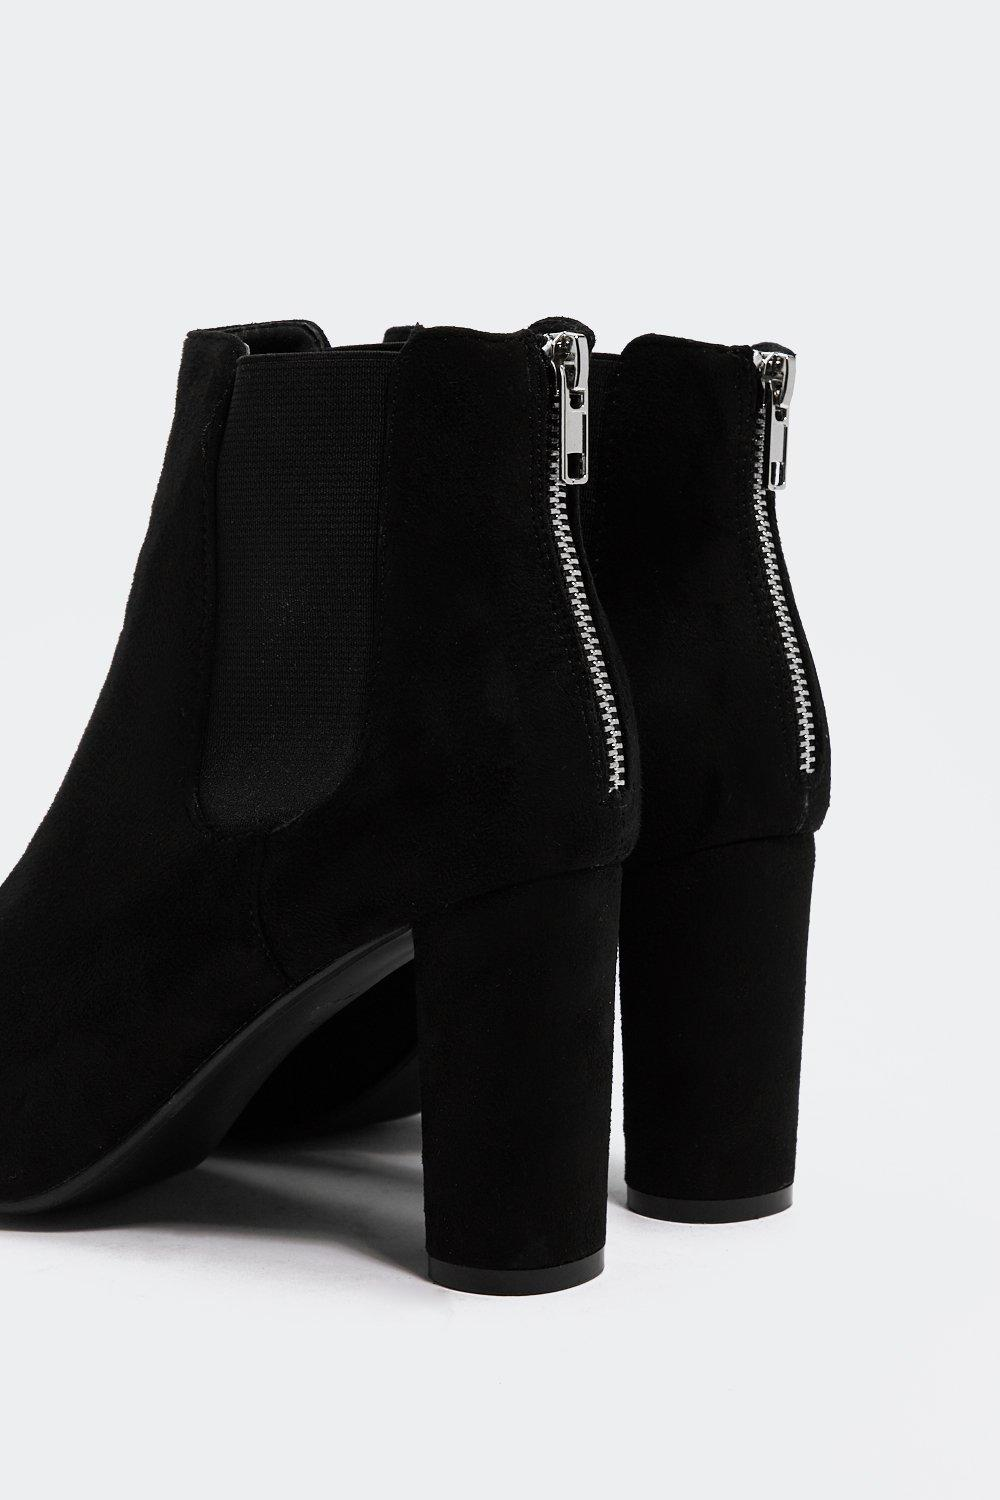 fda30933686 Faux Suede With Me Heeled Boot | Shop Clothes at Nasty Gal!